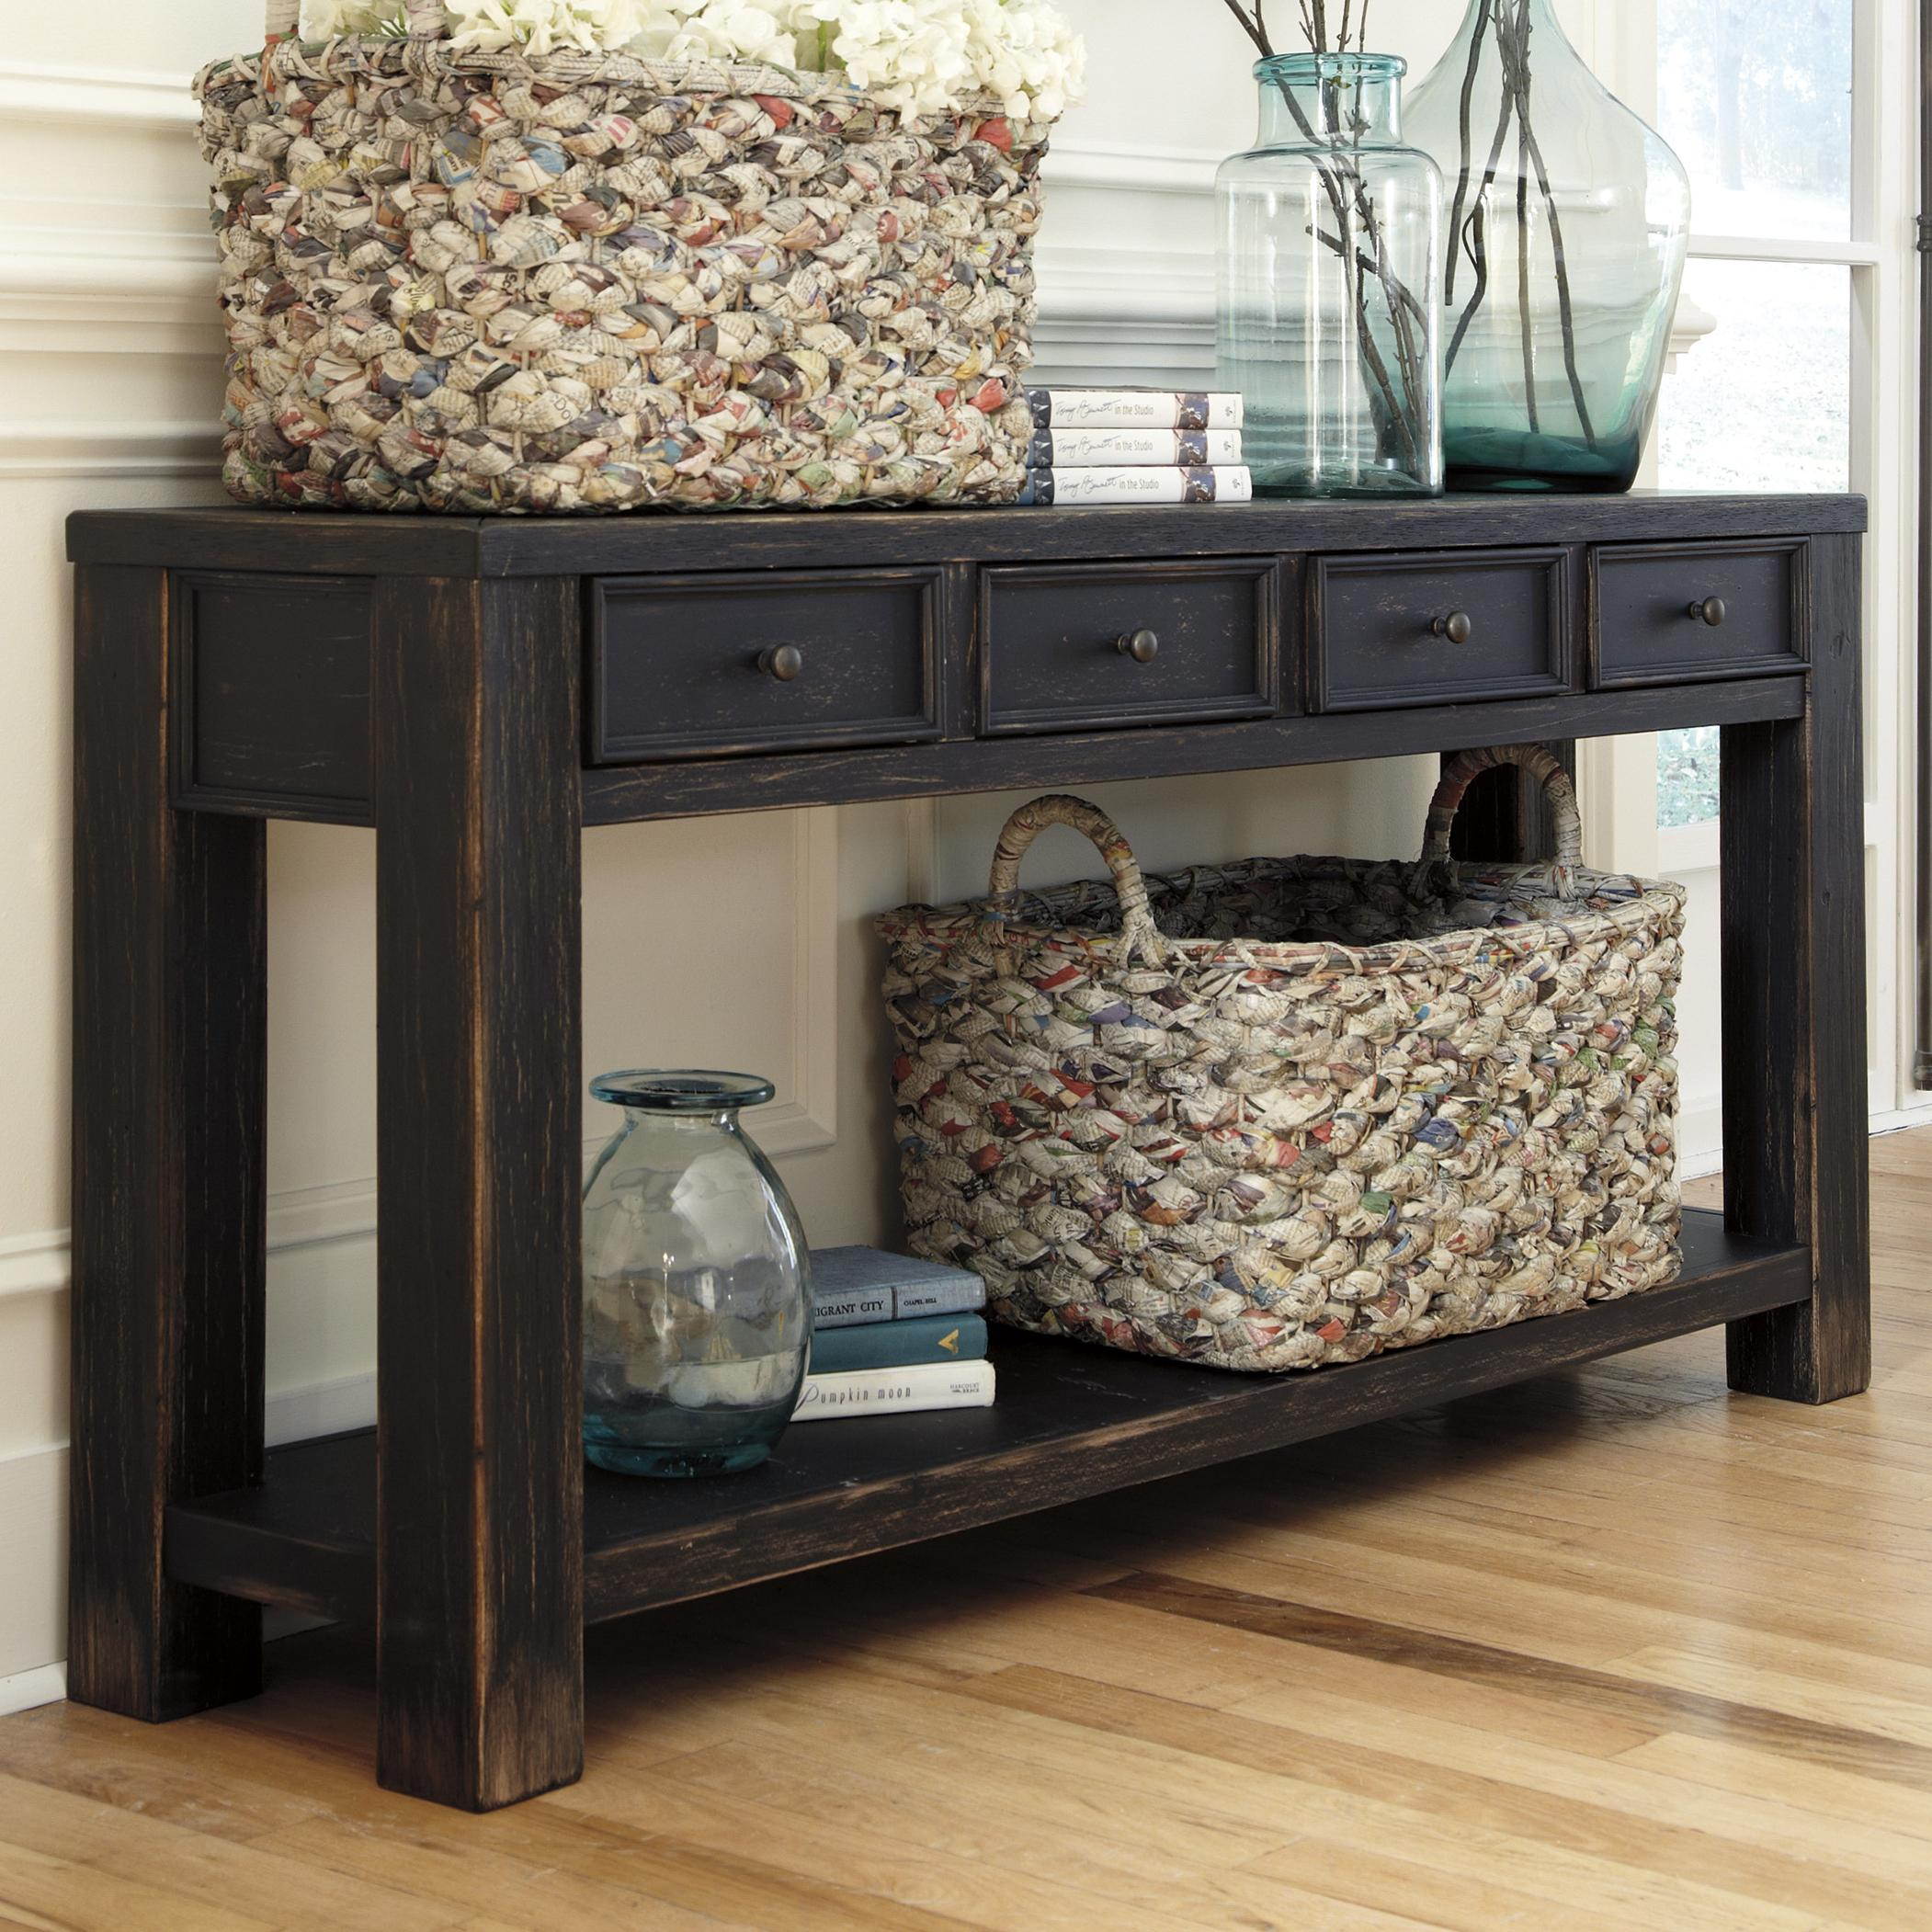 Gavelston Sofa Table by Signature Design by Ashley at Northeast Factory Direct